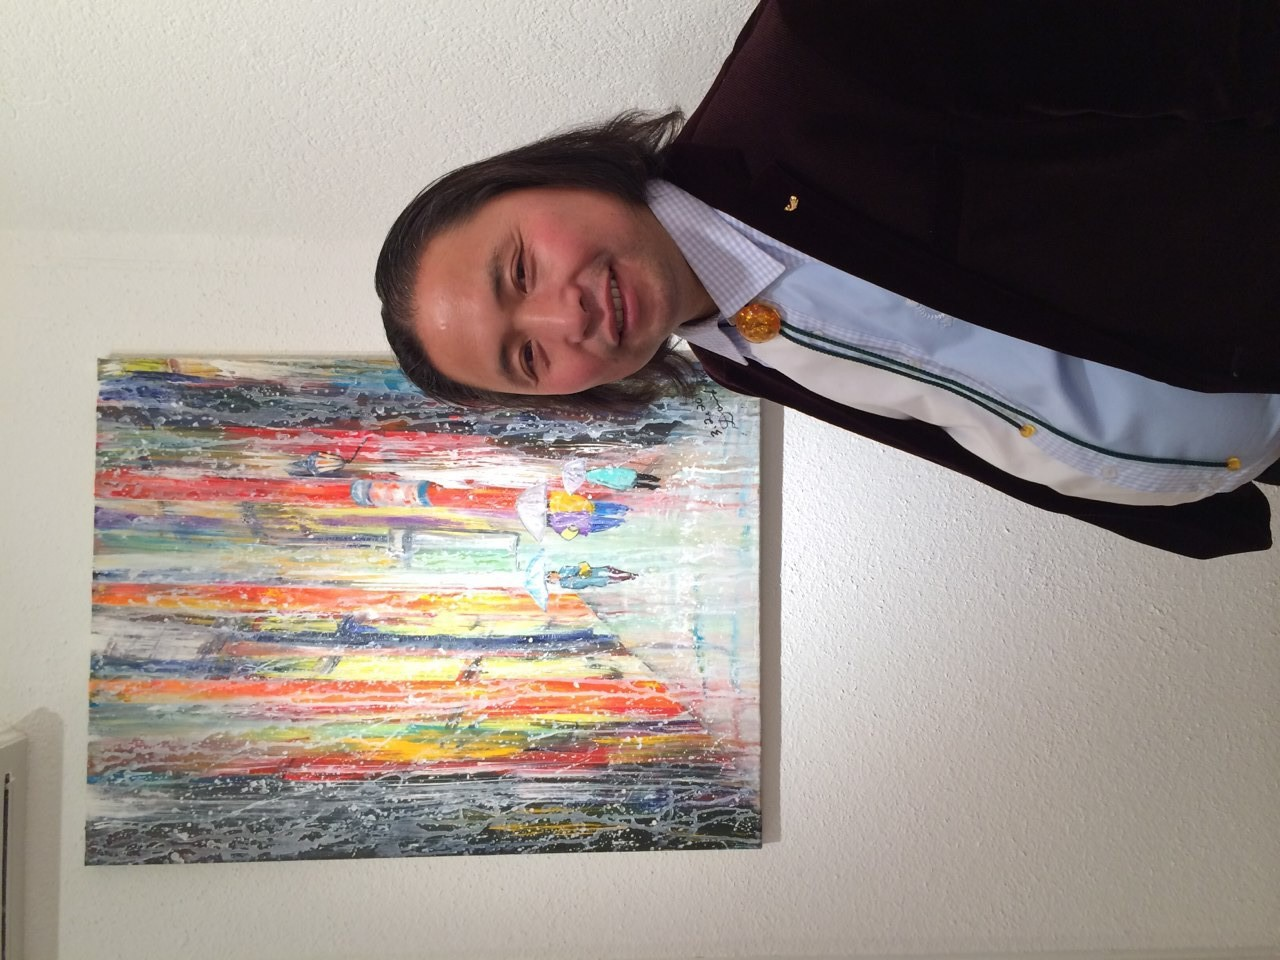 David Ma, Swiss Chinese Artist, DAVID MA ART - EXHIBITION, CASA DEL ARTE, 18.-23.11.2014, Vernissage